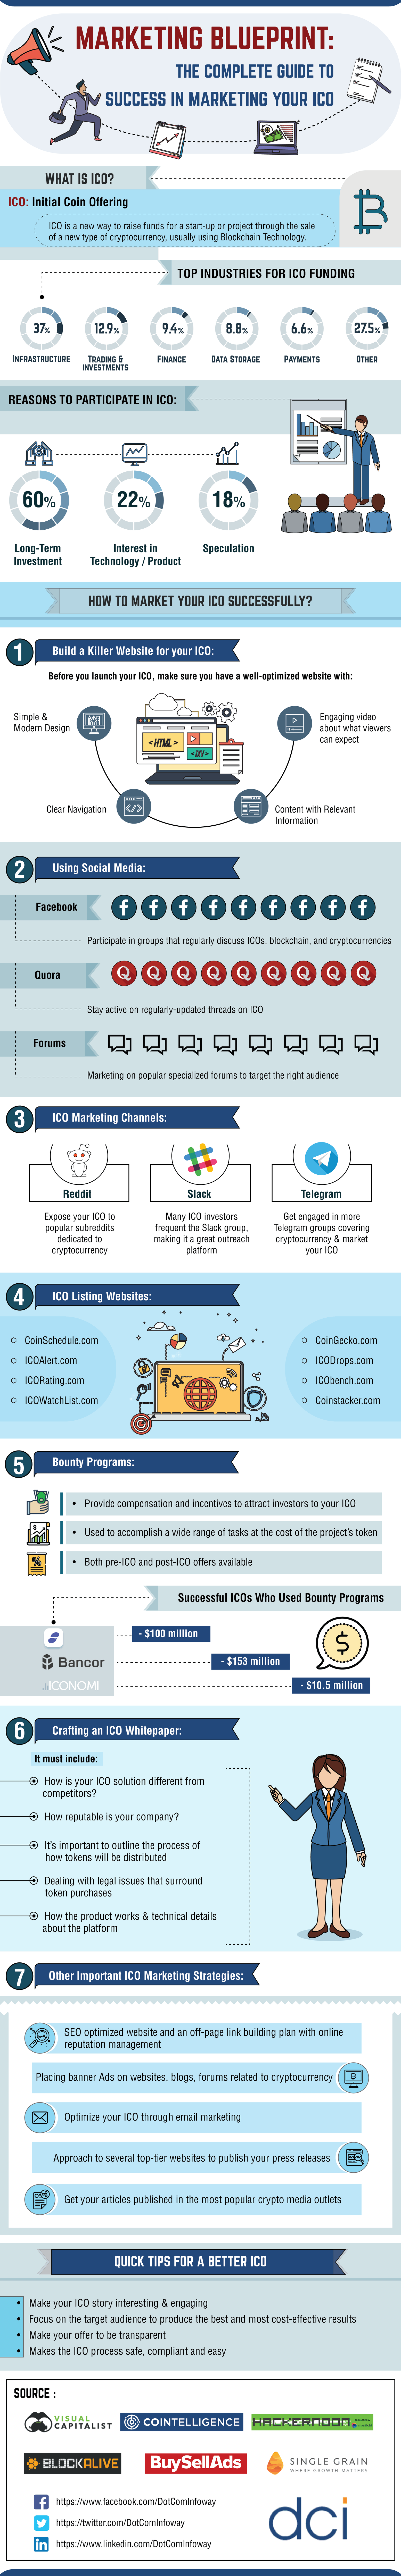 The Complete Guide to Success in Marketing your ICO